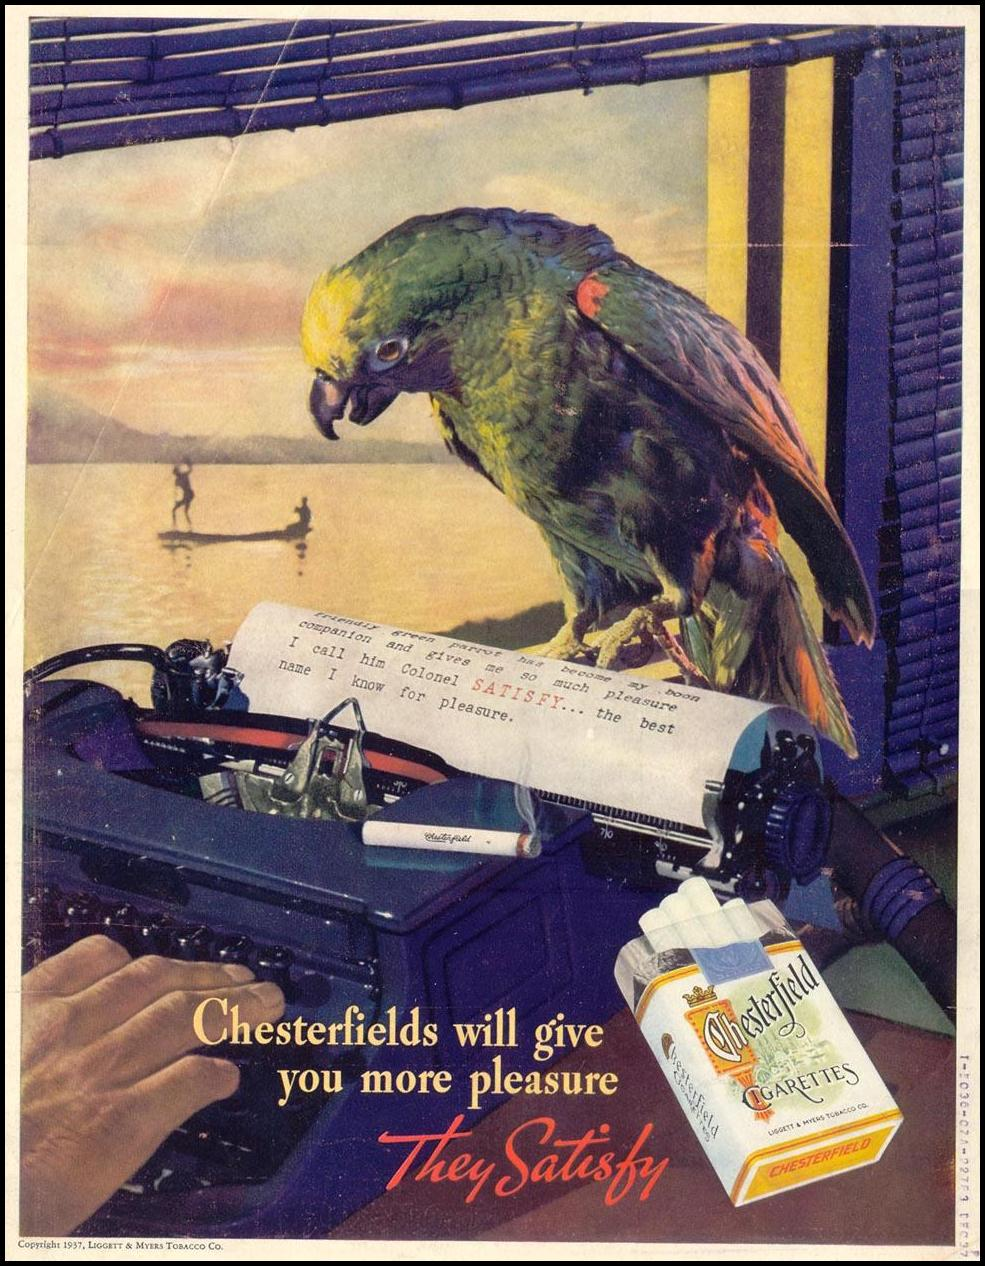 CHESTERFIELD CIGARETTES LIFE 09/20/1937 BACK COVER